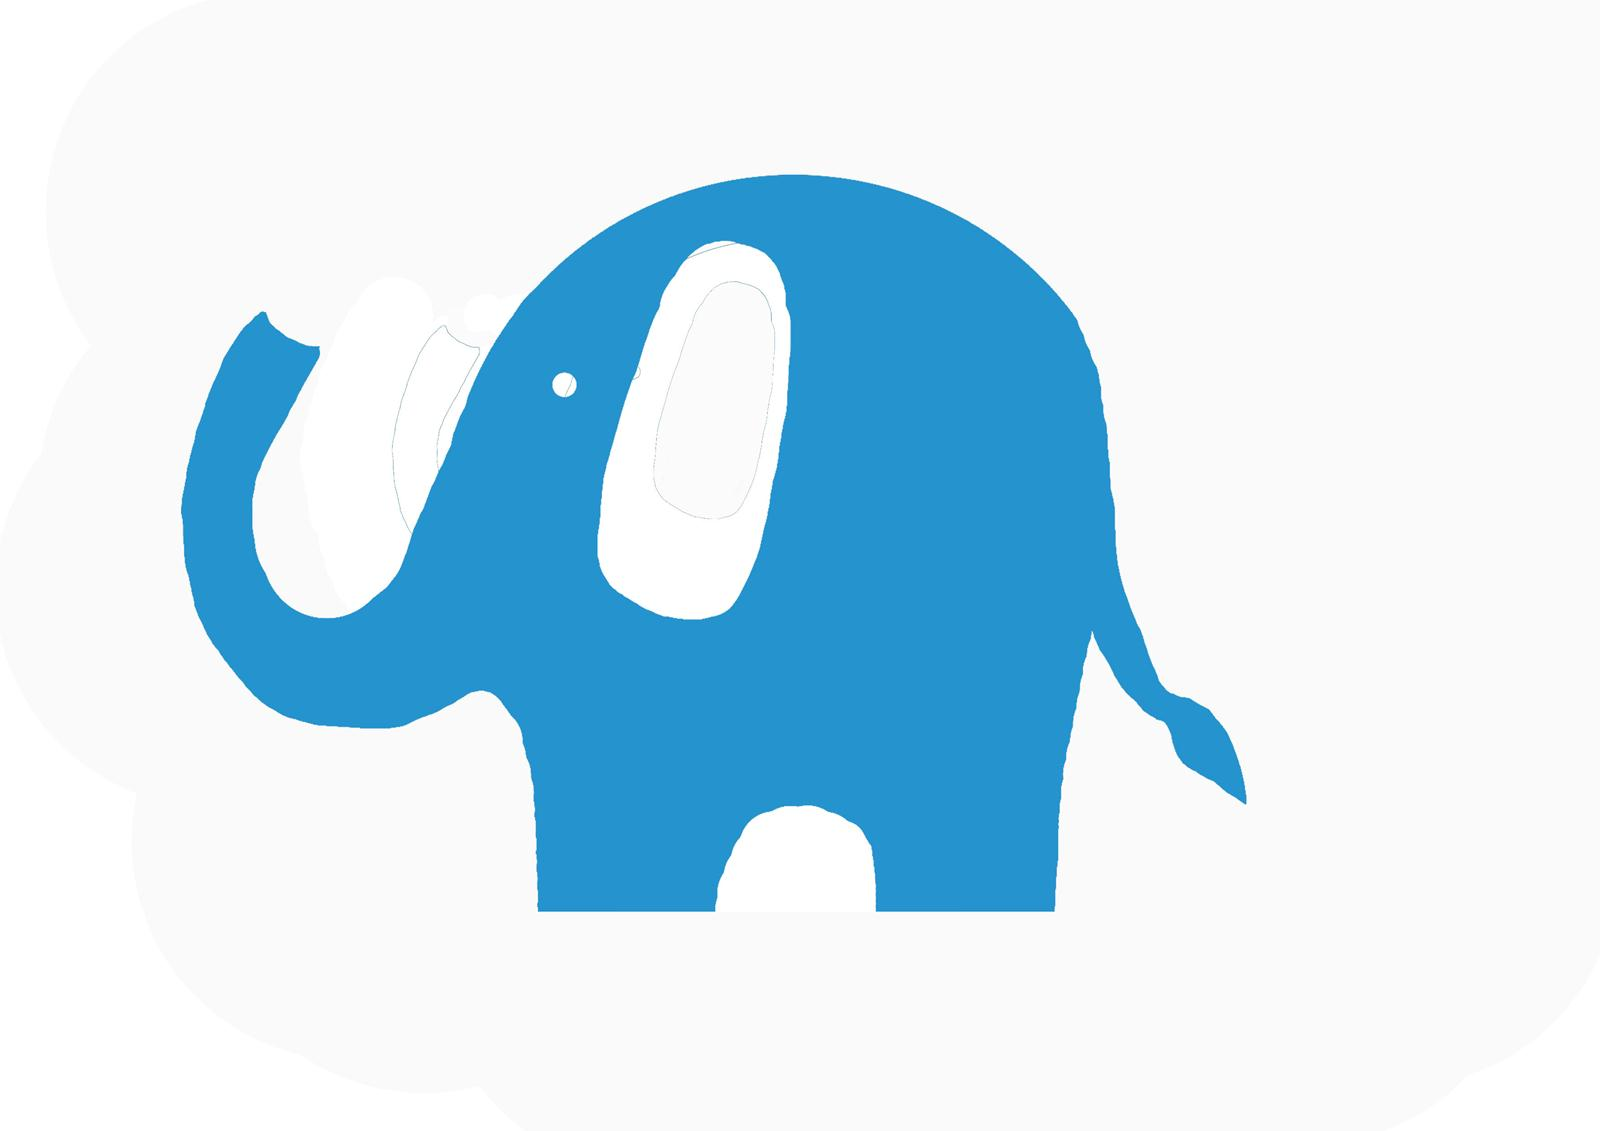 Simple elephant clipart graphic free download Simple Elephant Outline | Free download best Simple Elephant ... graphic free download